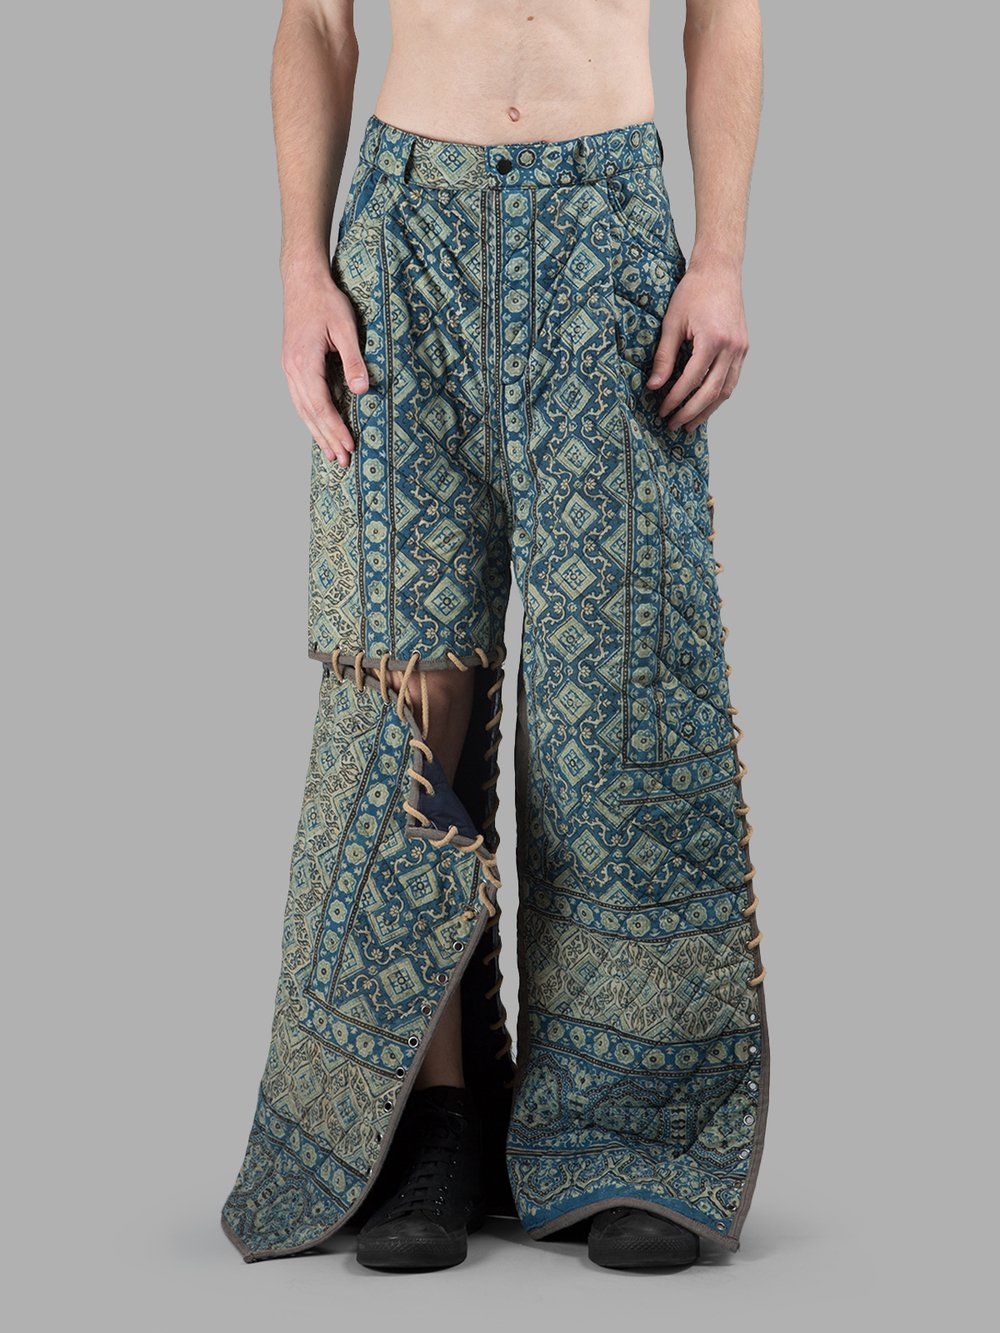 Printtrousers print1 8604